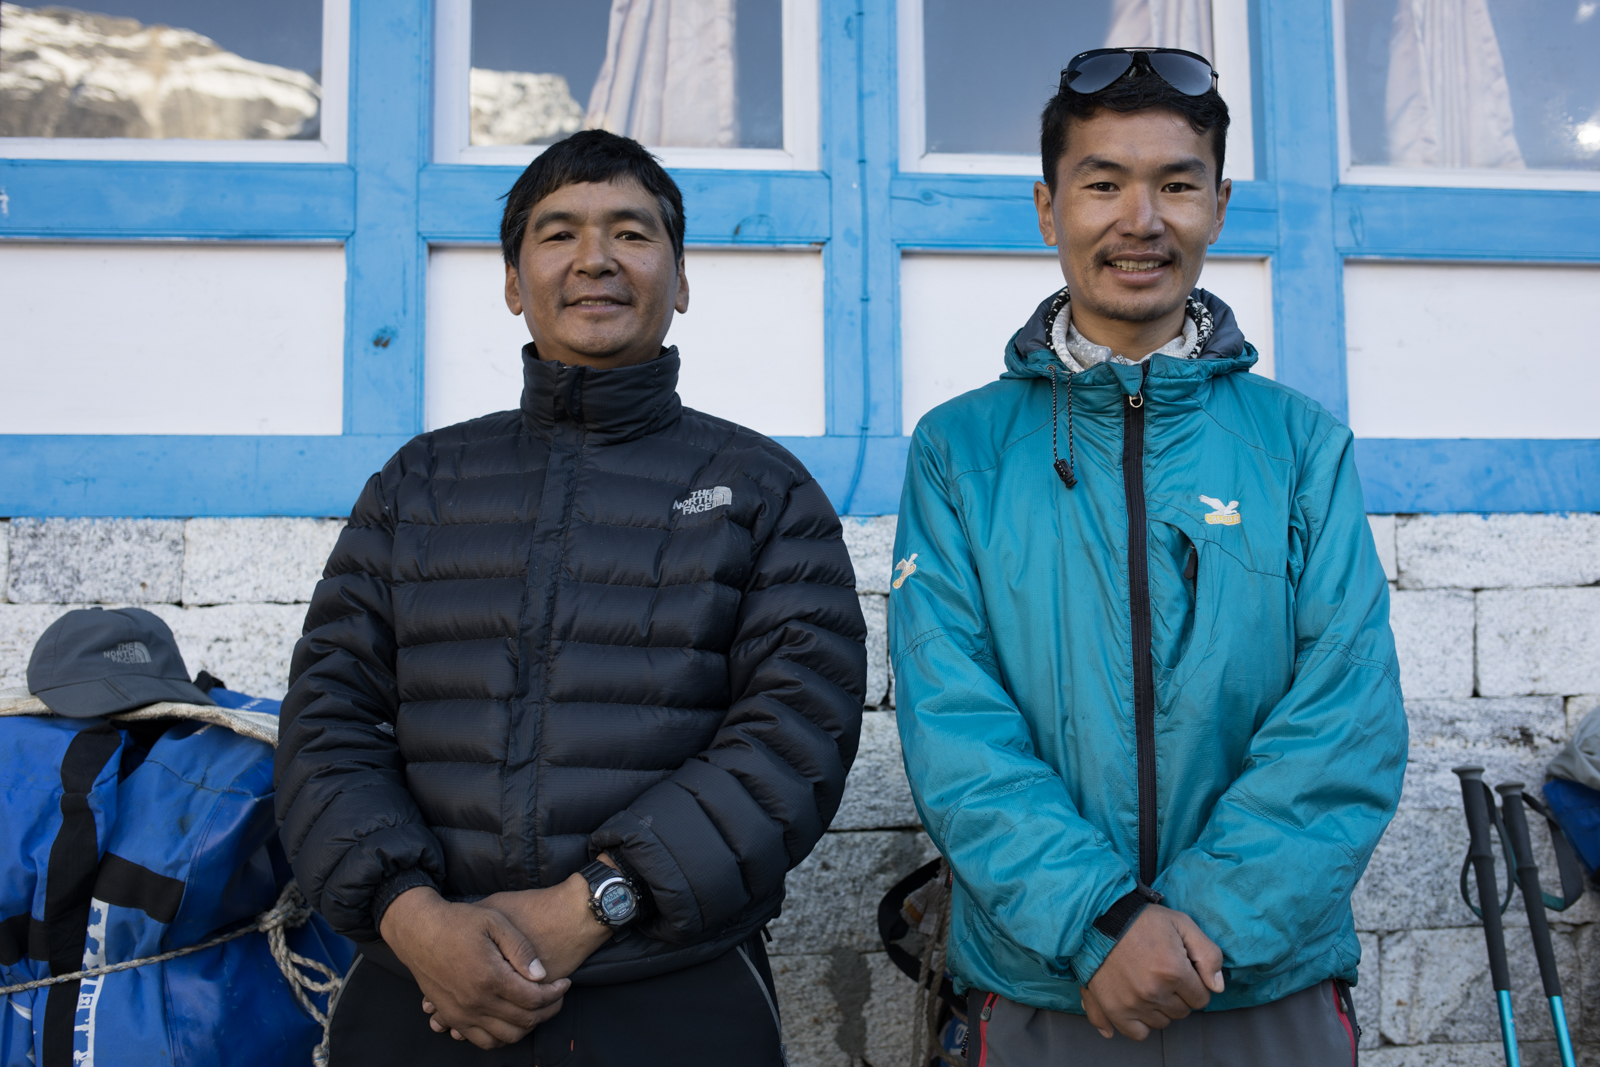 Our guide Lakpa Sherpa and his son Wanda Sherpa.